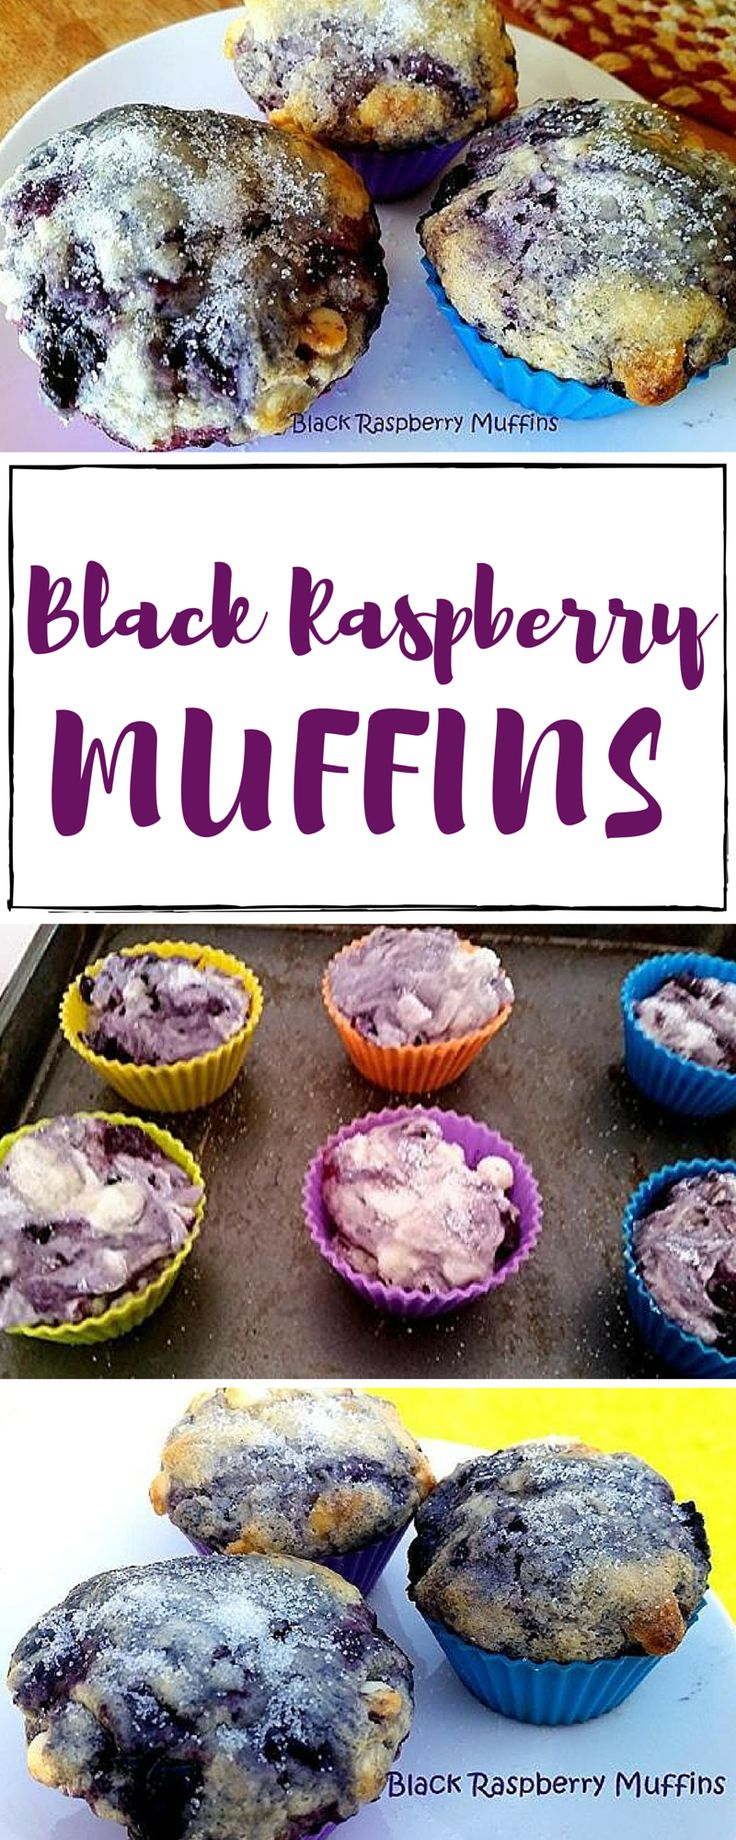 Black Raspberries remind me of growing up and spending so much time with Gram... picking the berries, then she'd bake pies. I just happened to have a bag in my freezer and thought using them in muffins sounded so good and they were. My family loved them.